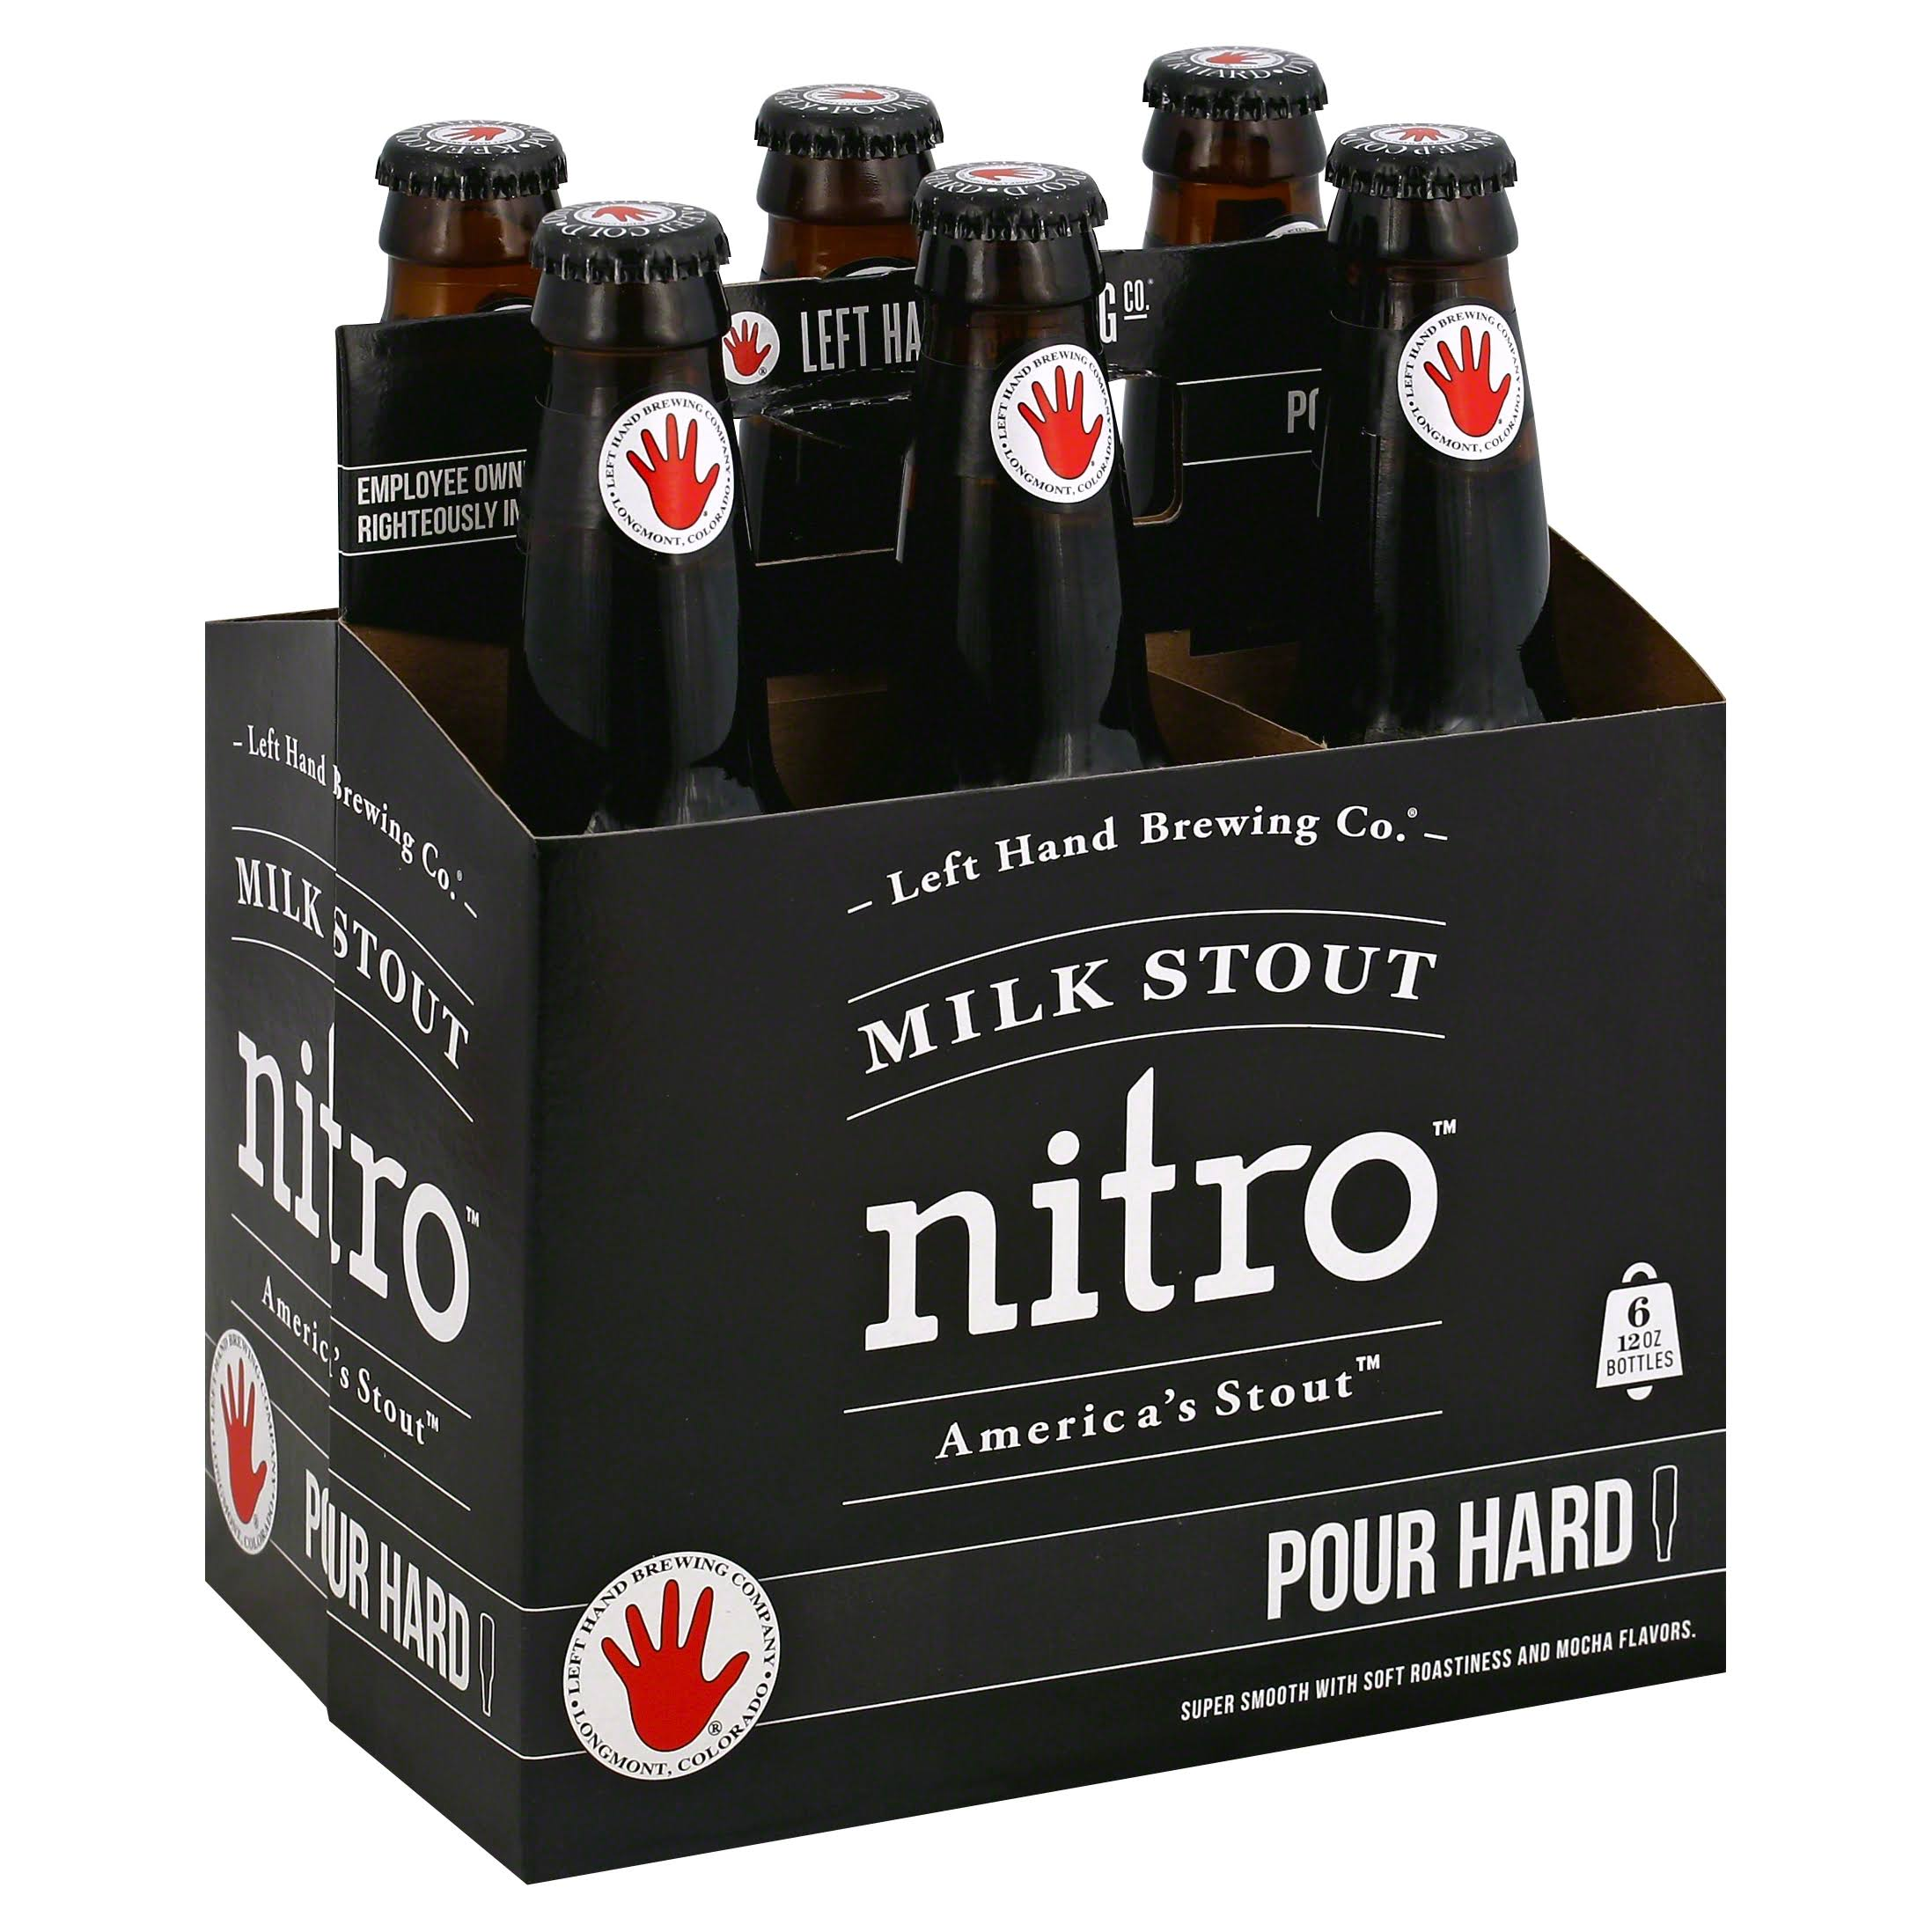 Left Hand Milk Stout Nitro - x6